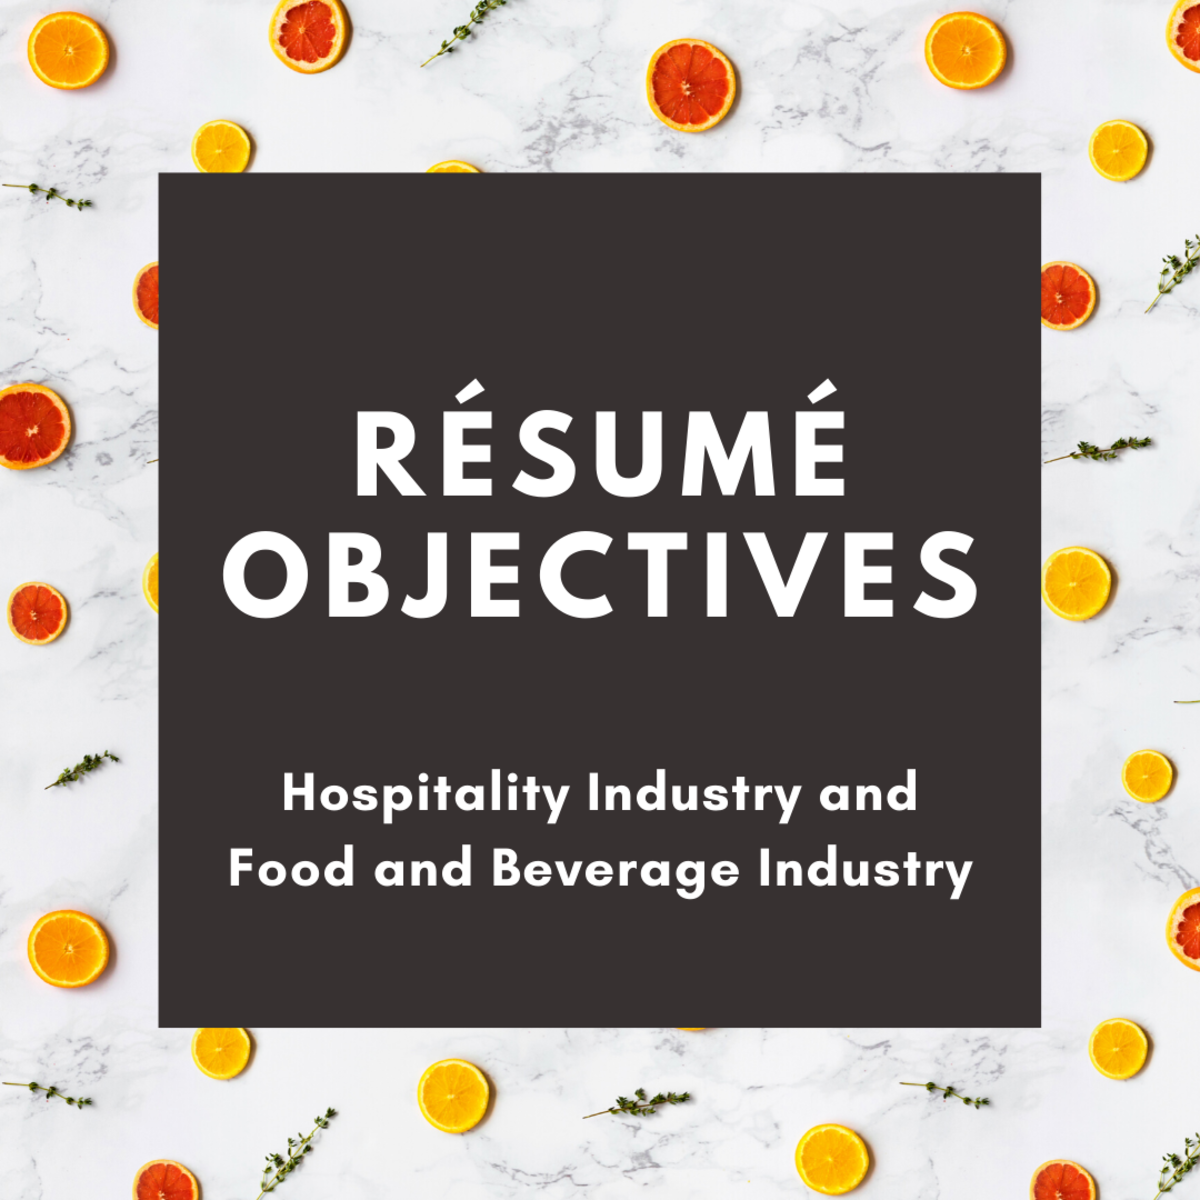 Learn how to write a résumé objective for employment in the hospitality or food and beverage industries.